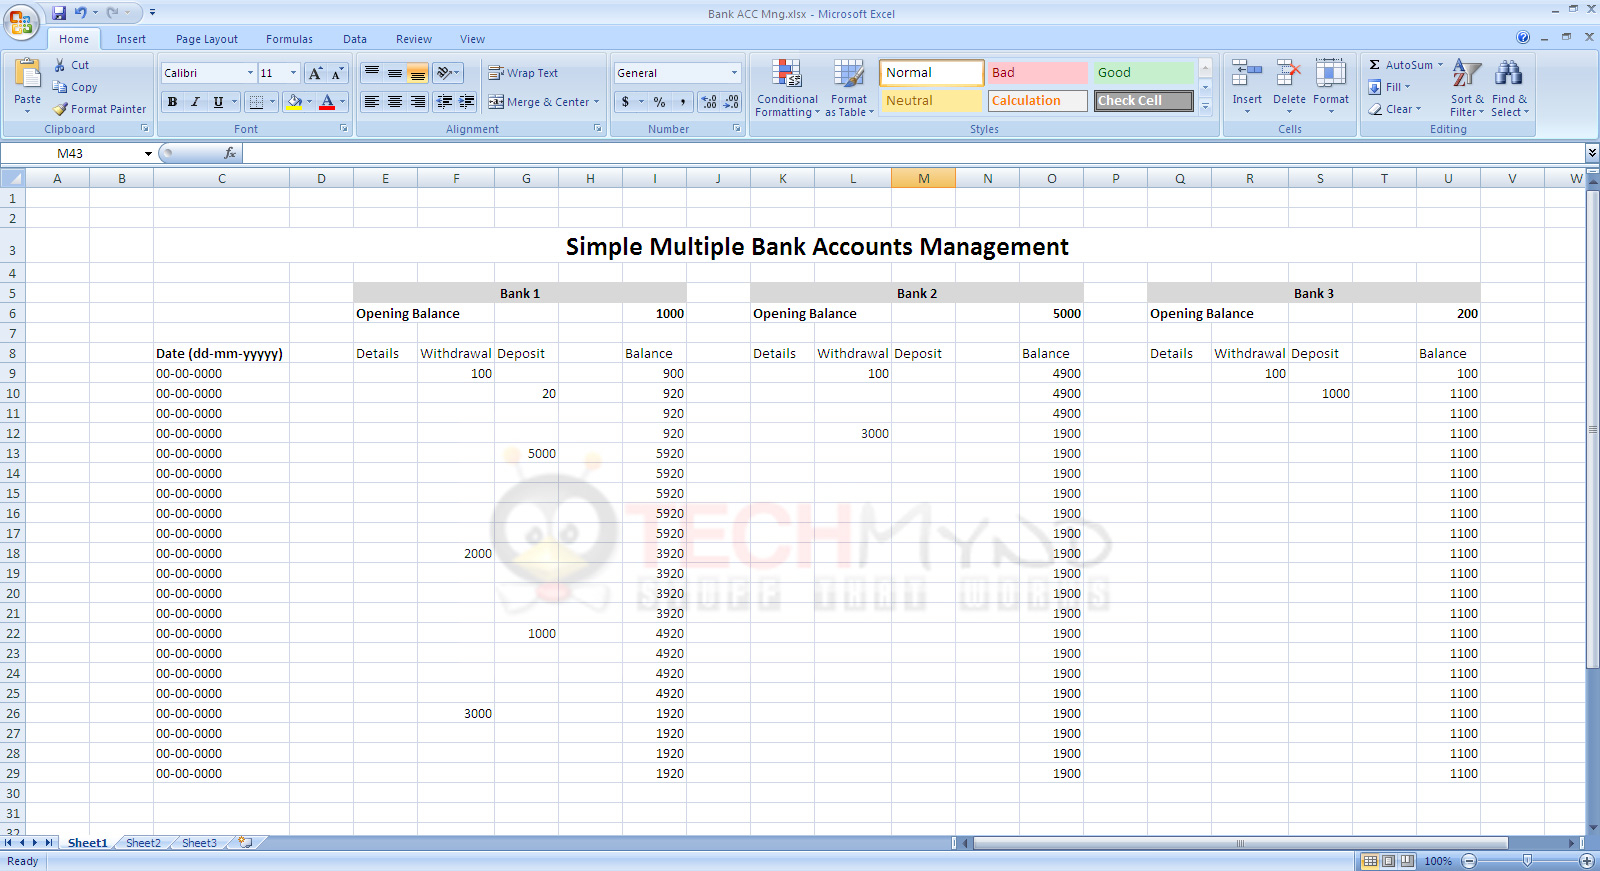 Bank Account Spreadsheet Excel With Manage Bank Accounts Using Simple Excel Sheet  Freebies  Techmynd